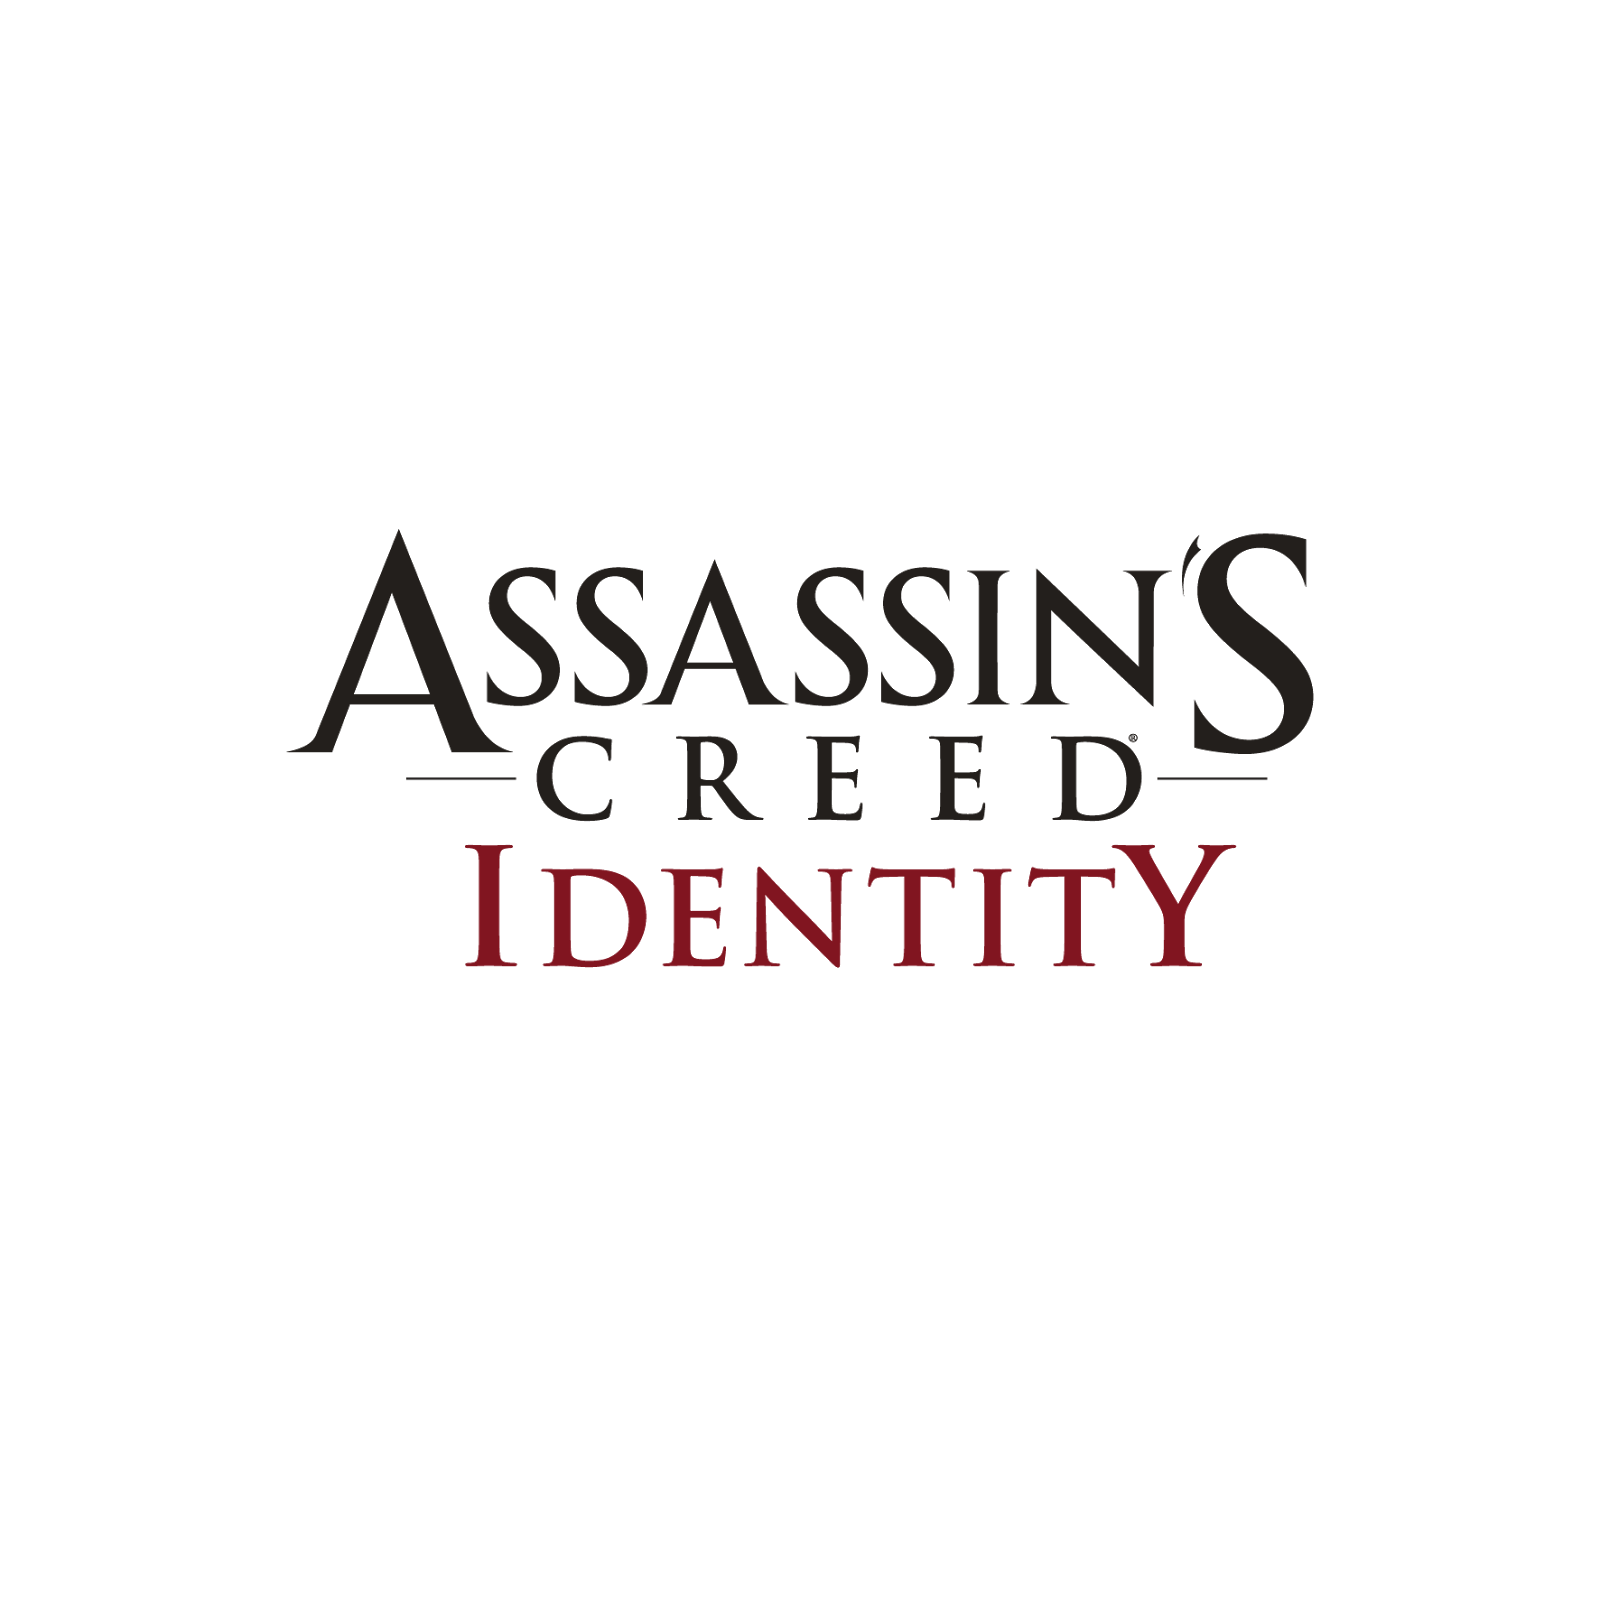 Download Game Android - Assassin's Creed Identity APK + DATA